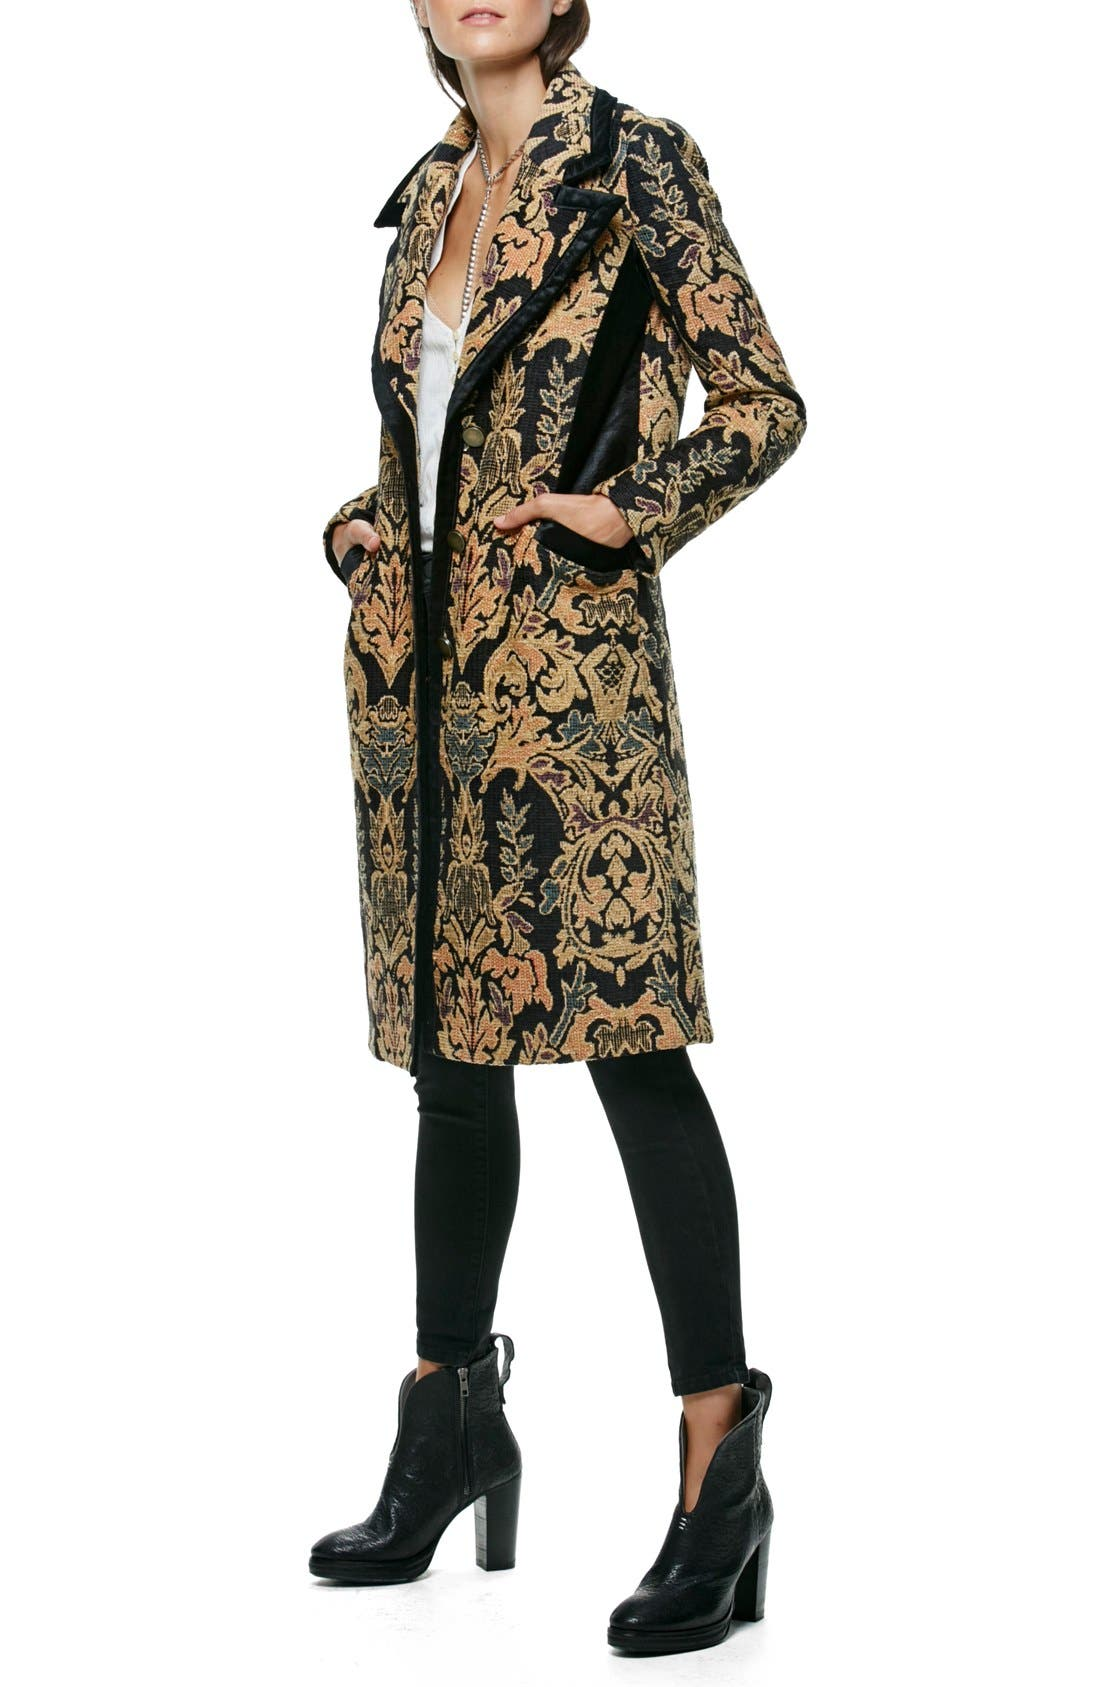 FREE PEOPLE,                             Jacquard Coat,                             Main thumbnail 1, color,                             001